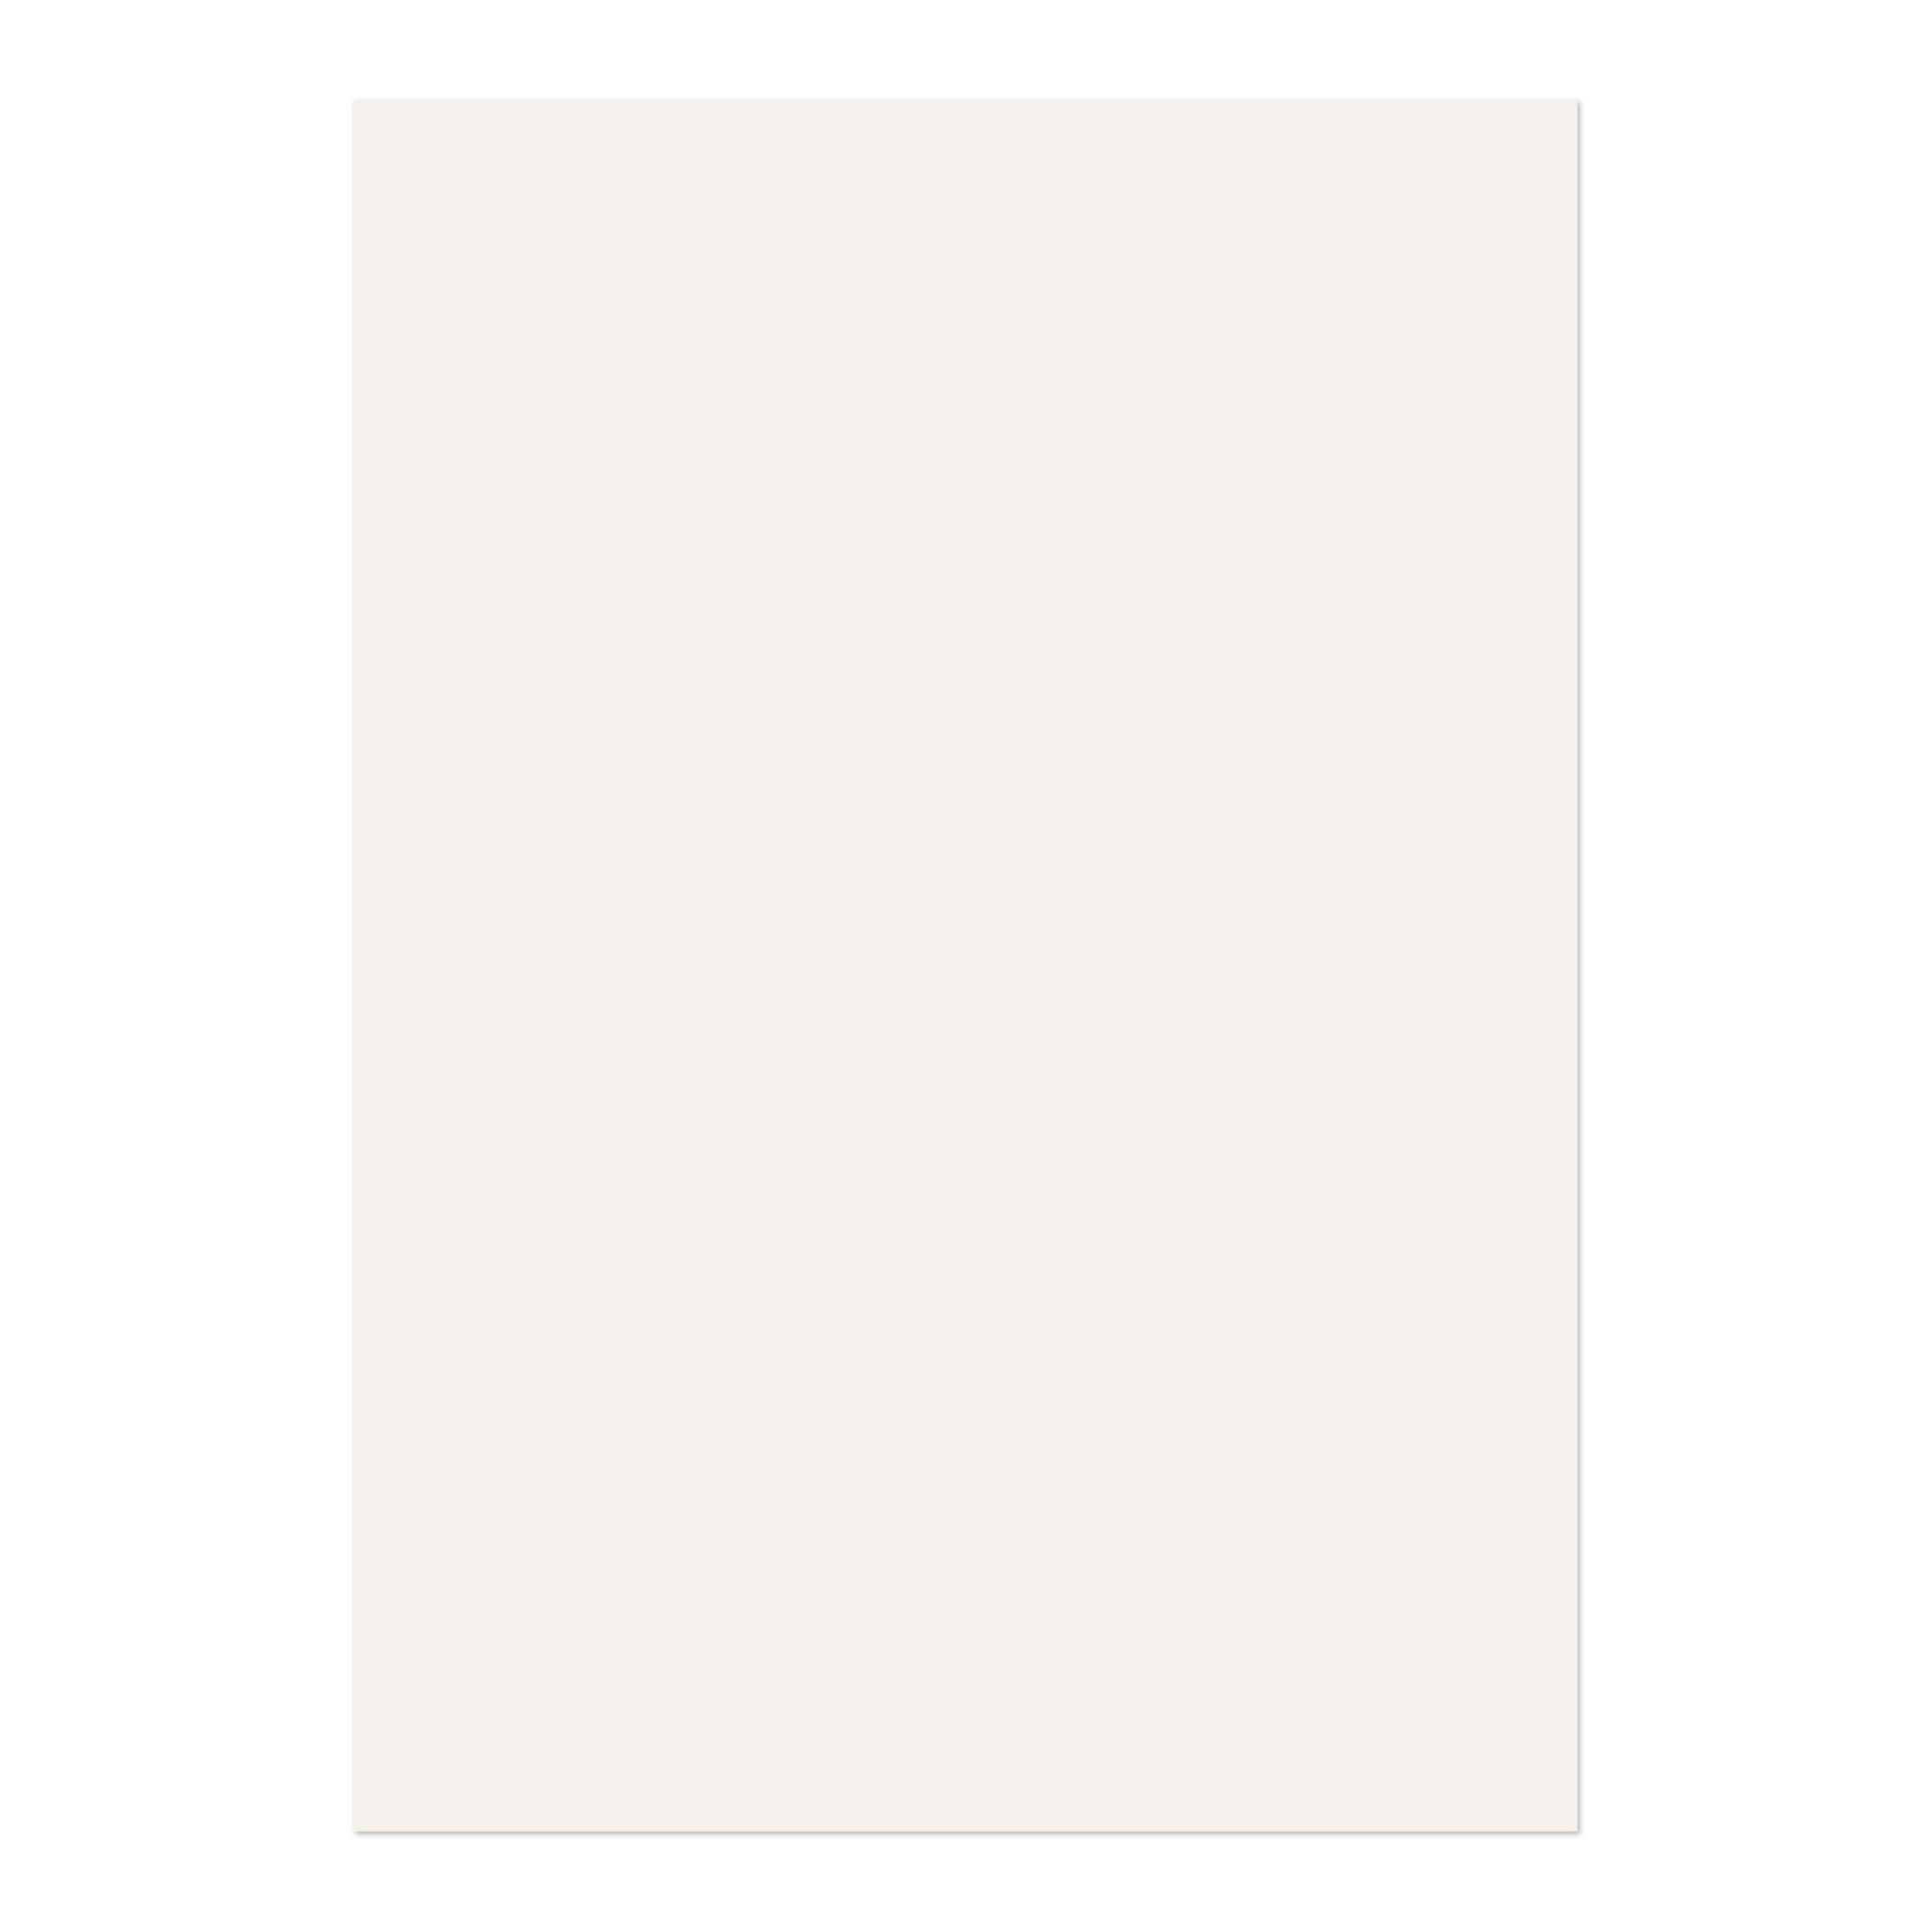 Blake Premium Business A4 120gsm Laid Paper High White PK50